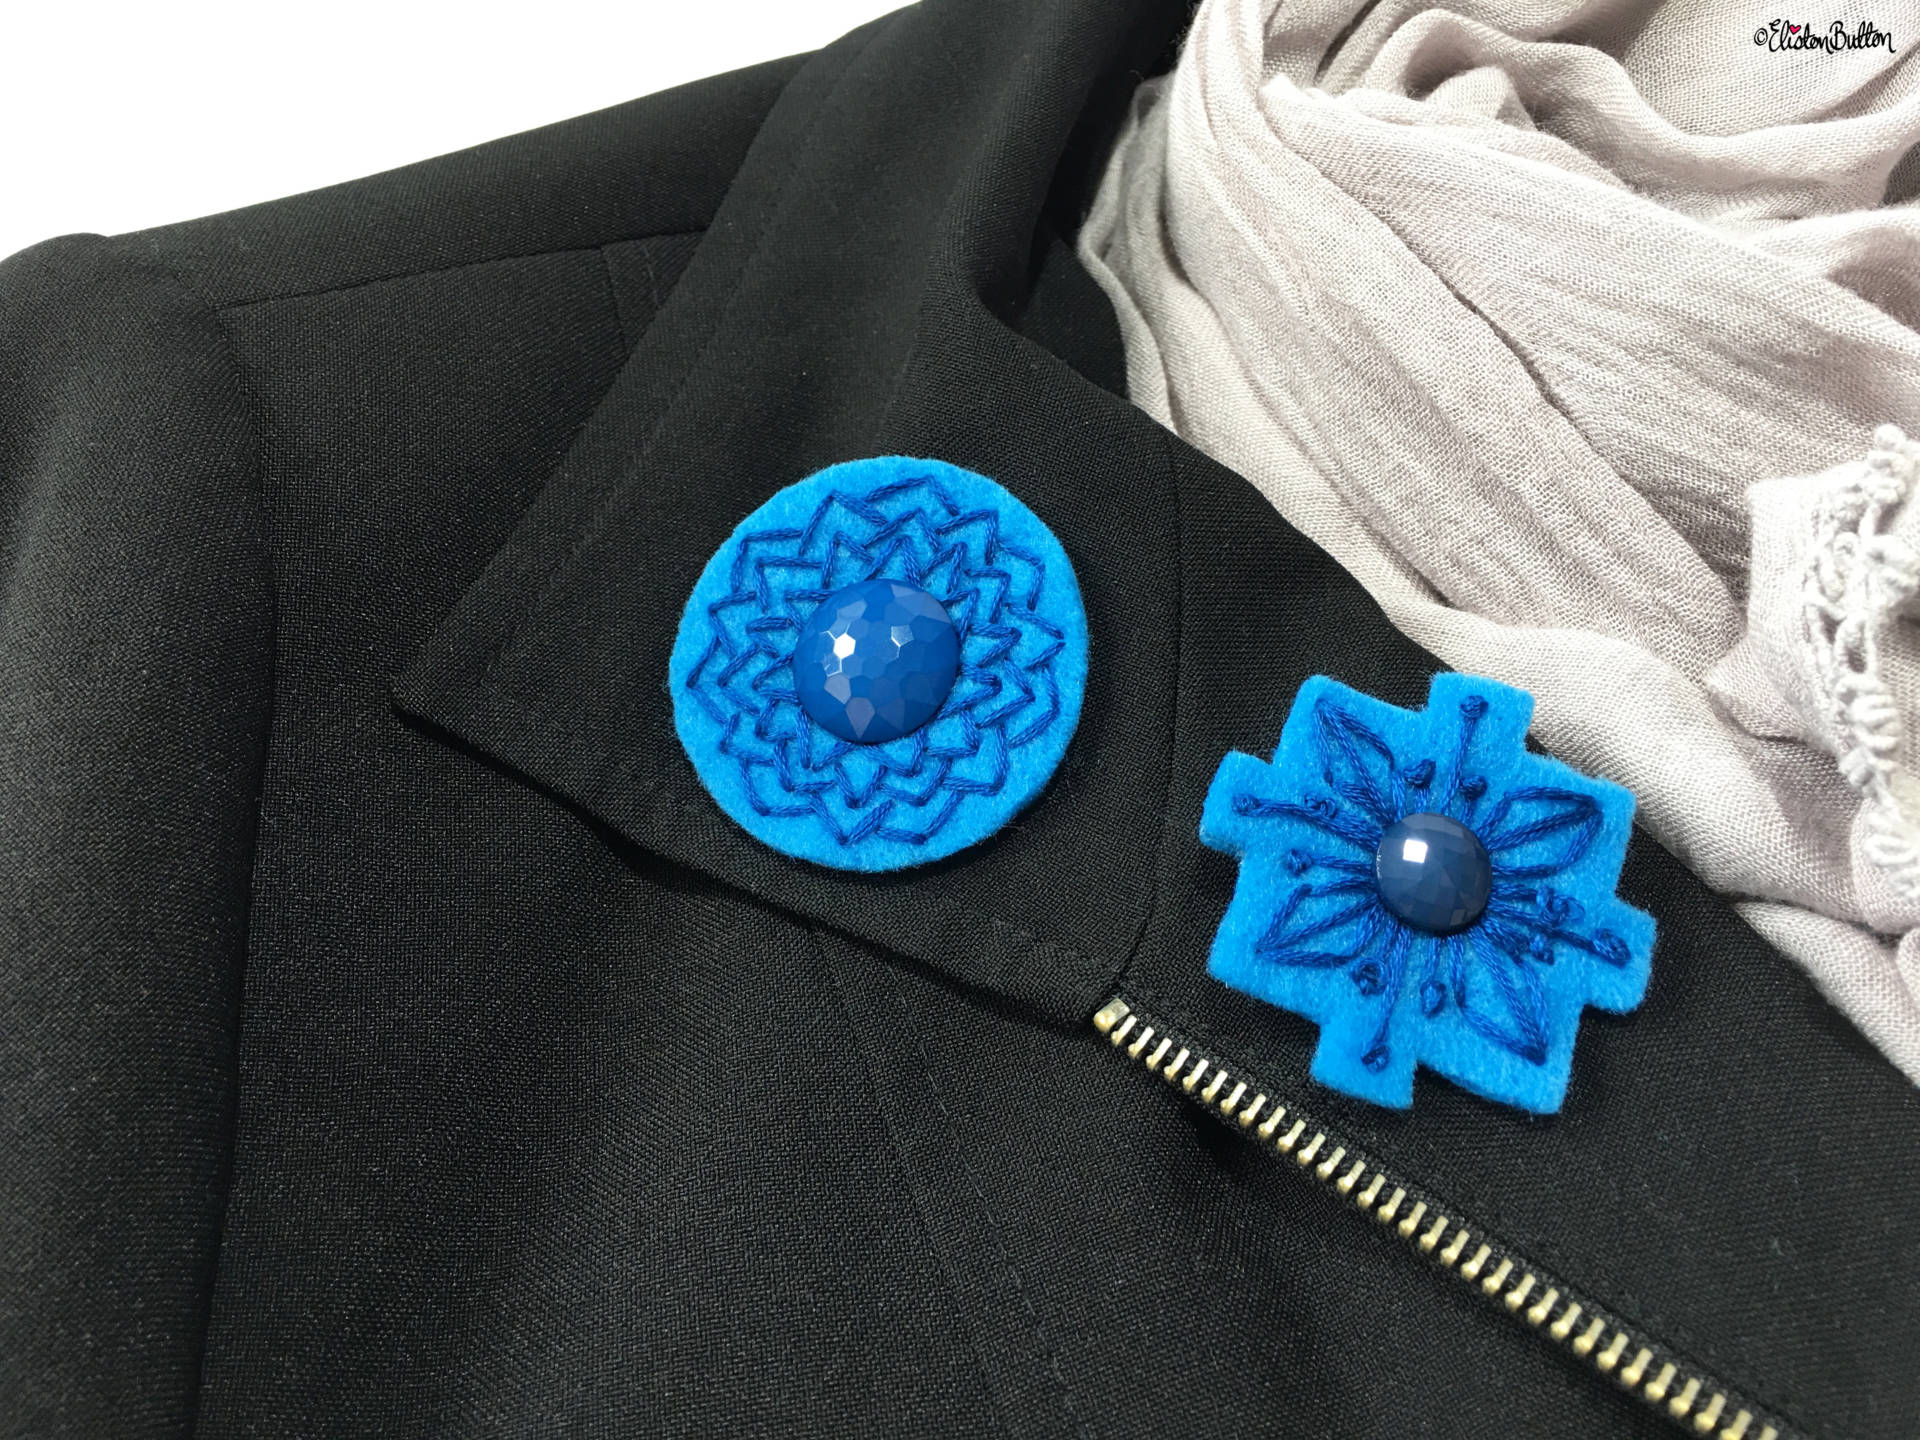 Blue and Teal Embroidered Felt Lapel Pins on a Blazer Lapel - Create 30 - No. 5, 6, & 7 - Embroidered Felt Lapel Pins at www.elistonbutton.com - Eliston Button - That Crafty Kid – Art, Design, Craft & Adventure.